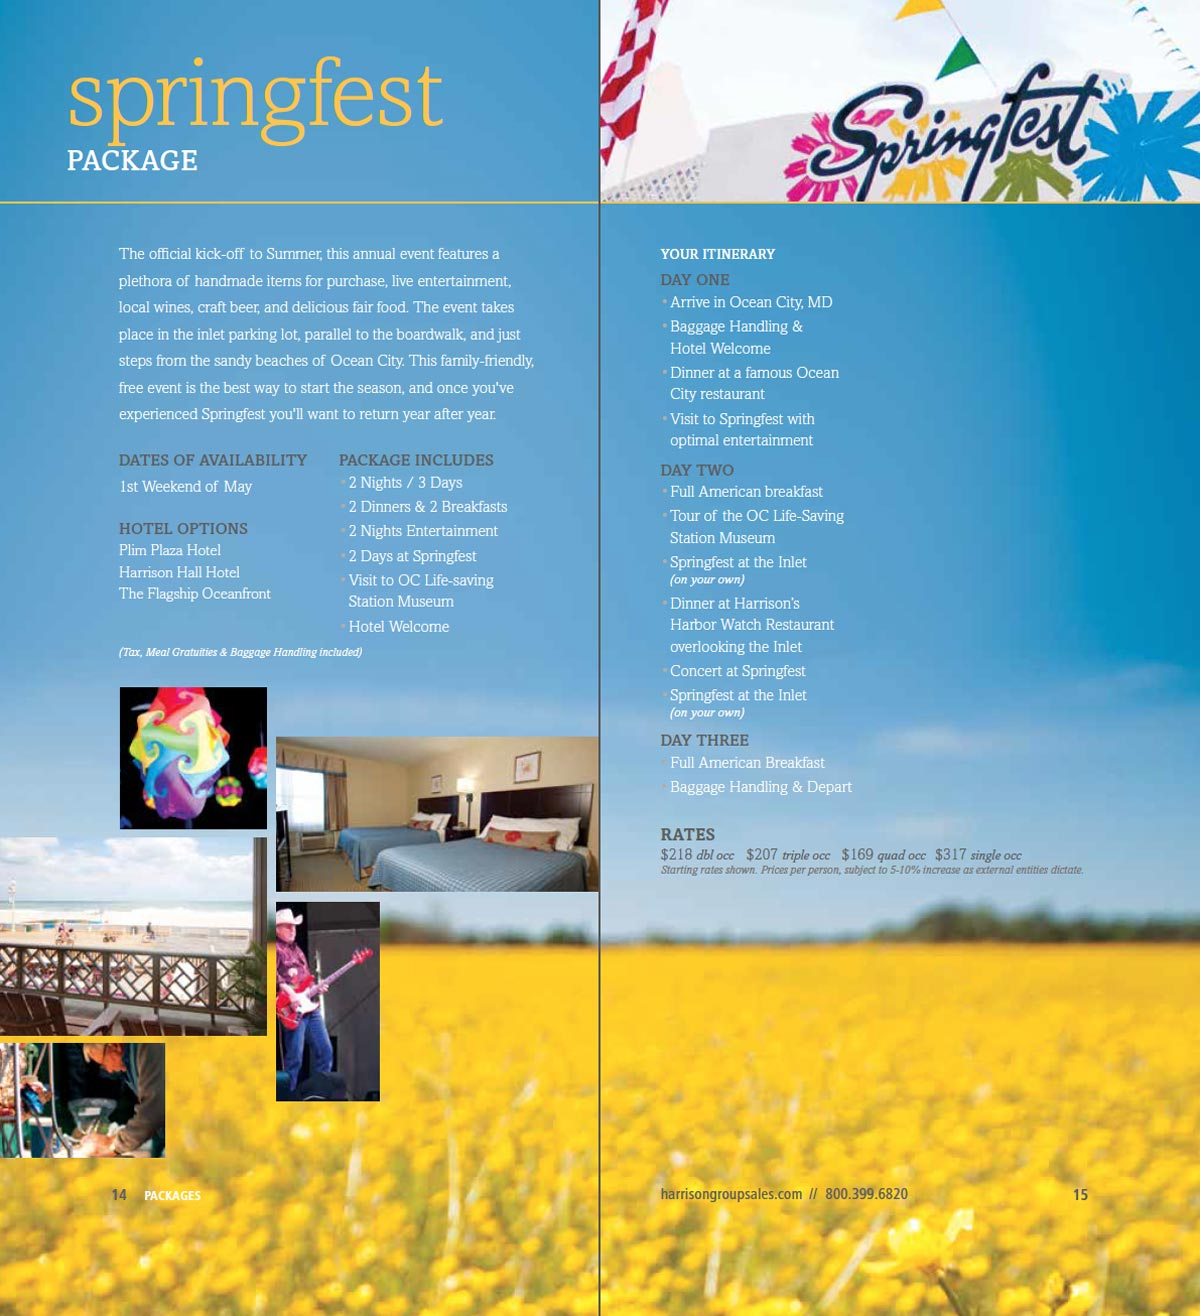 The Harrison Group Sales Springfest package